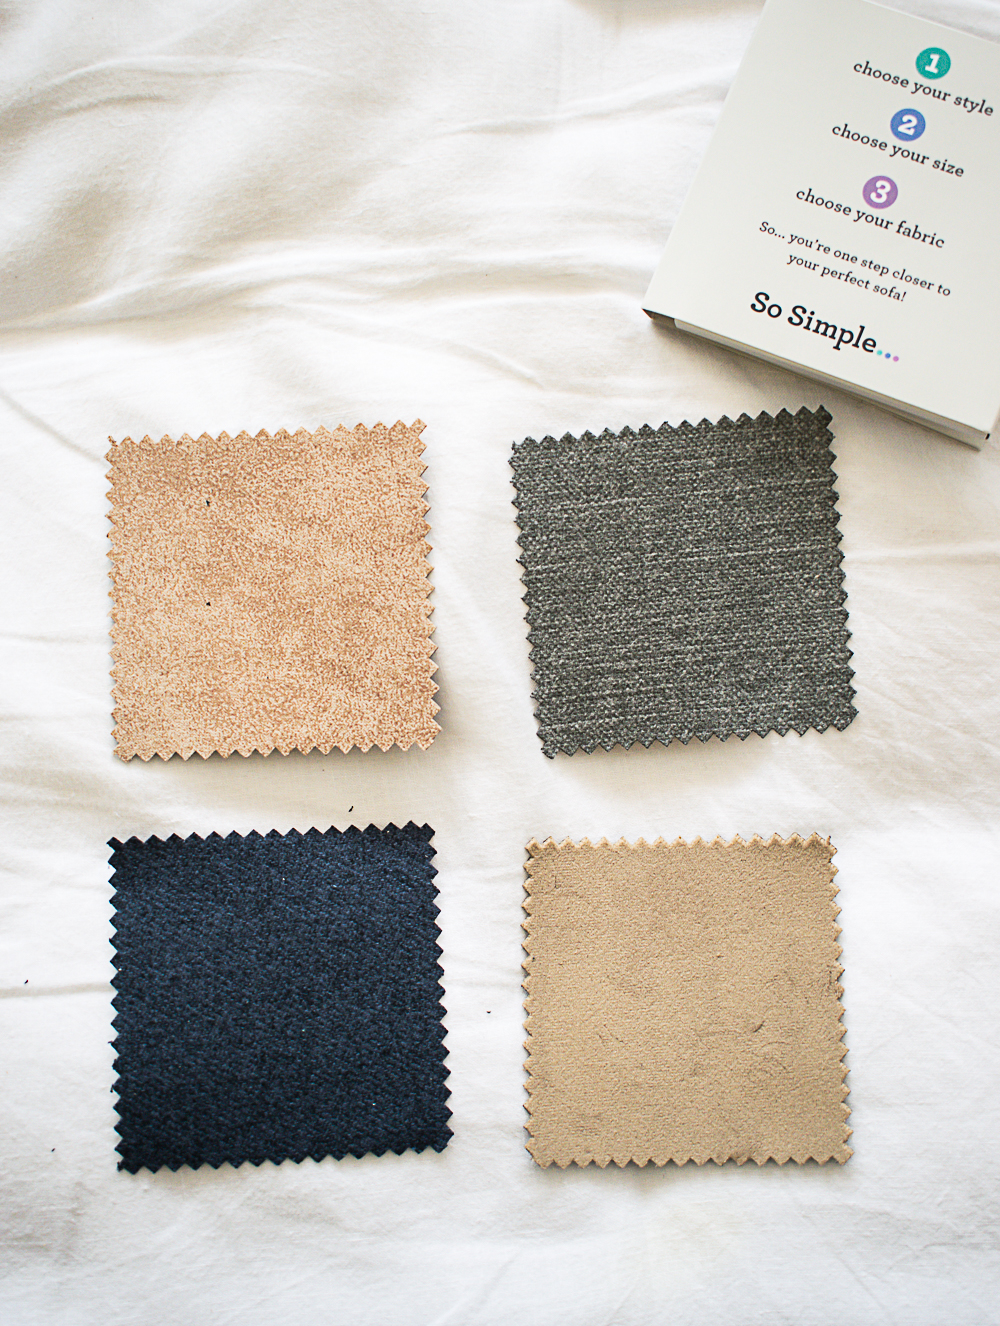 Image of 4 fabric samples from the so simple range